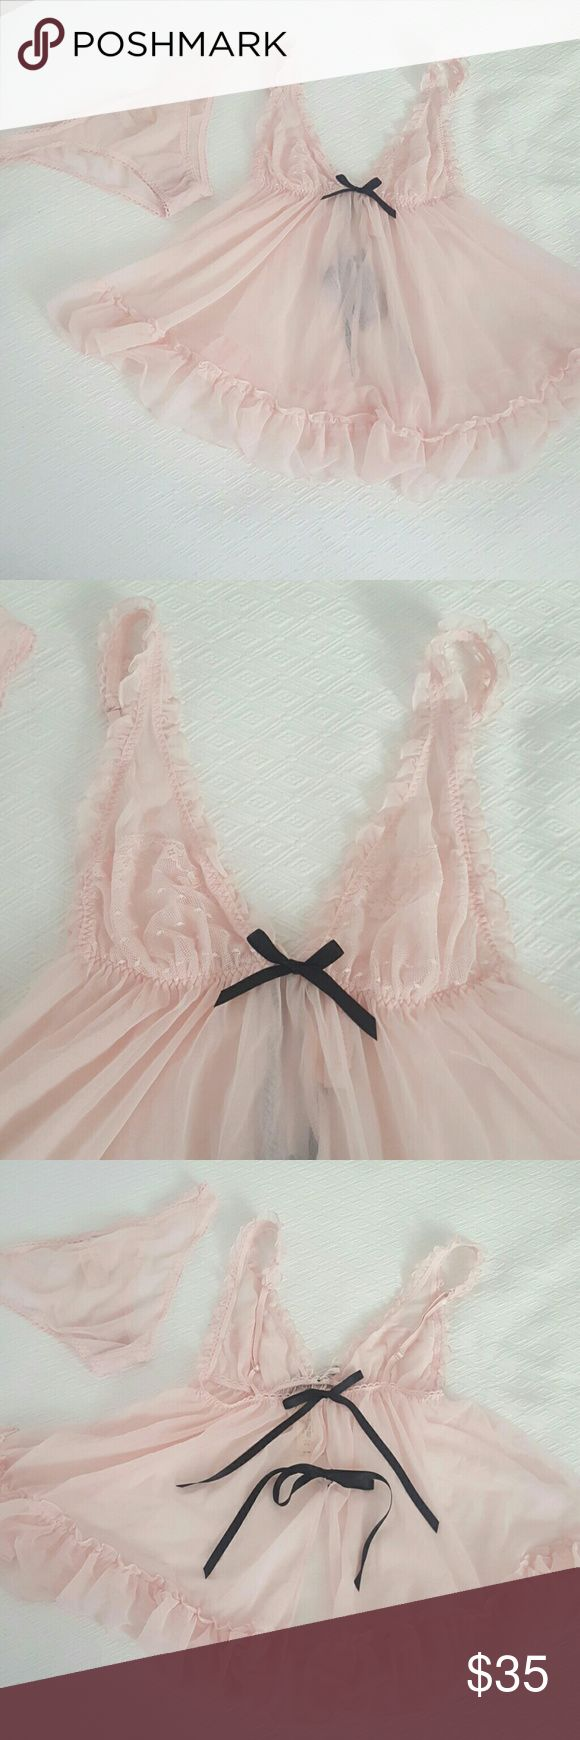 Victoria's Secret babydoll lingerie with panty Beautiful details, 2 piece set, new with tags. Victoria's Secret Intimates & Sleepwear Chemises & Slips